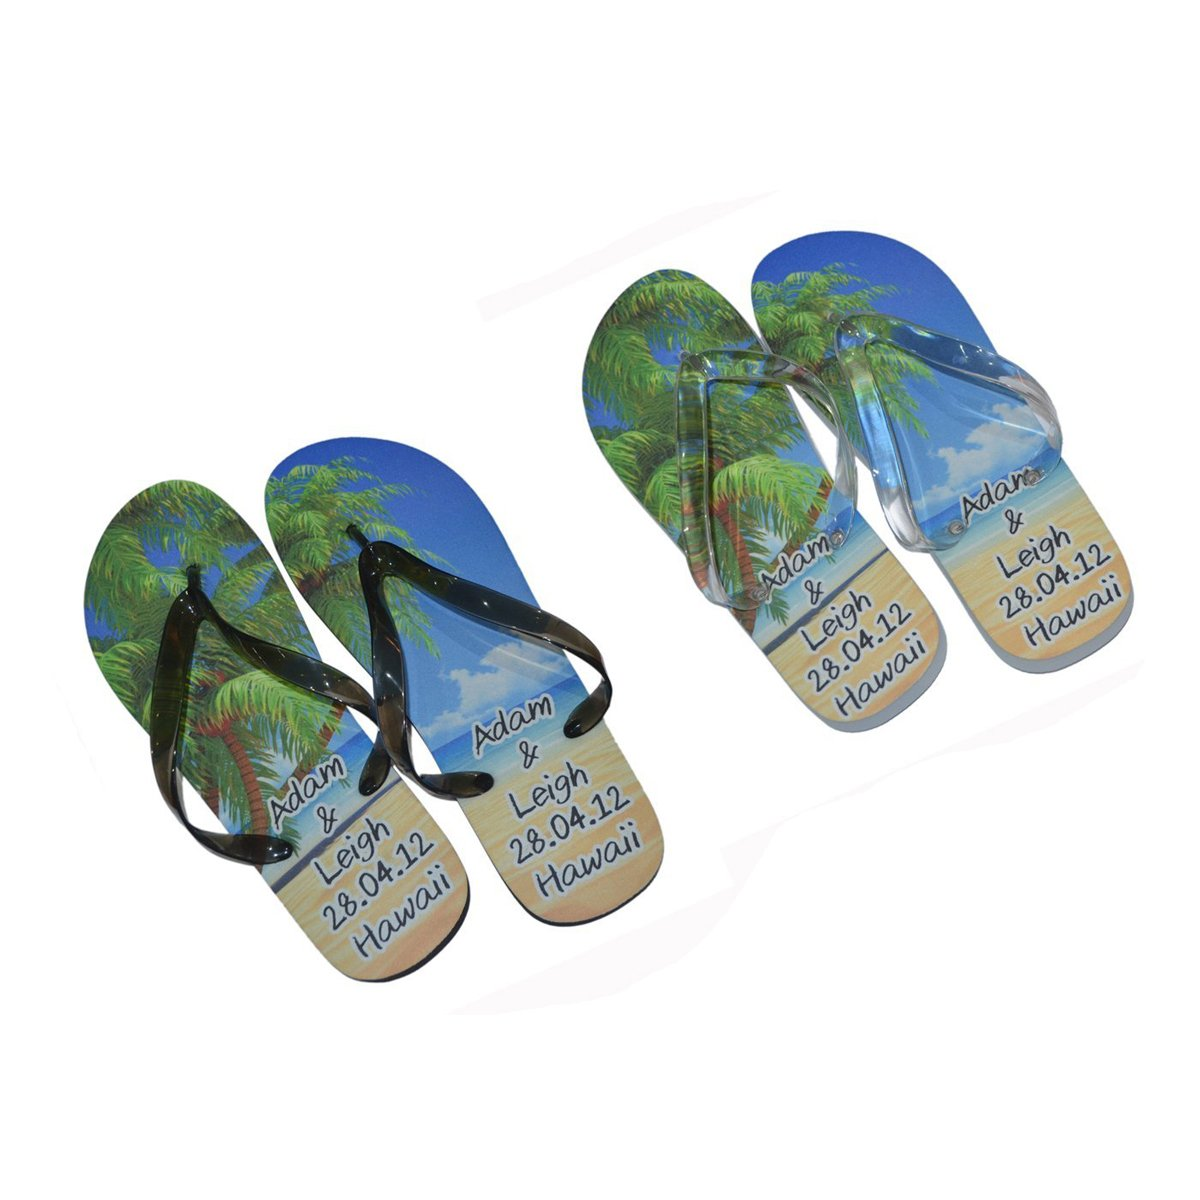 96cdb225e361a Bespoke Personalised His and Hers Honeymoon Beach Flip Flops Ladies One  Size UK 4-8